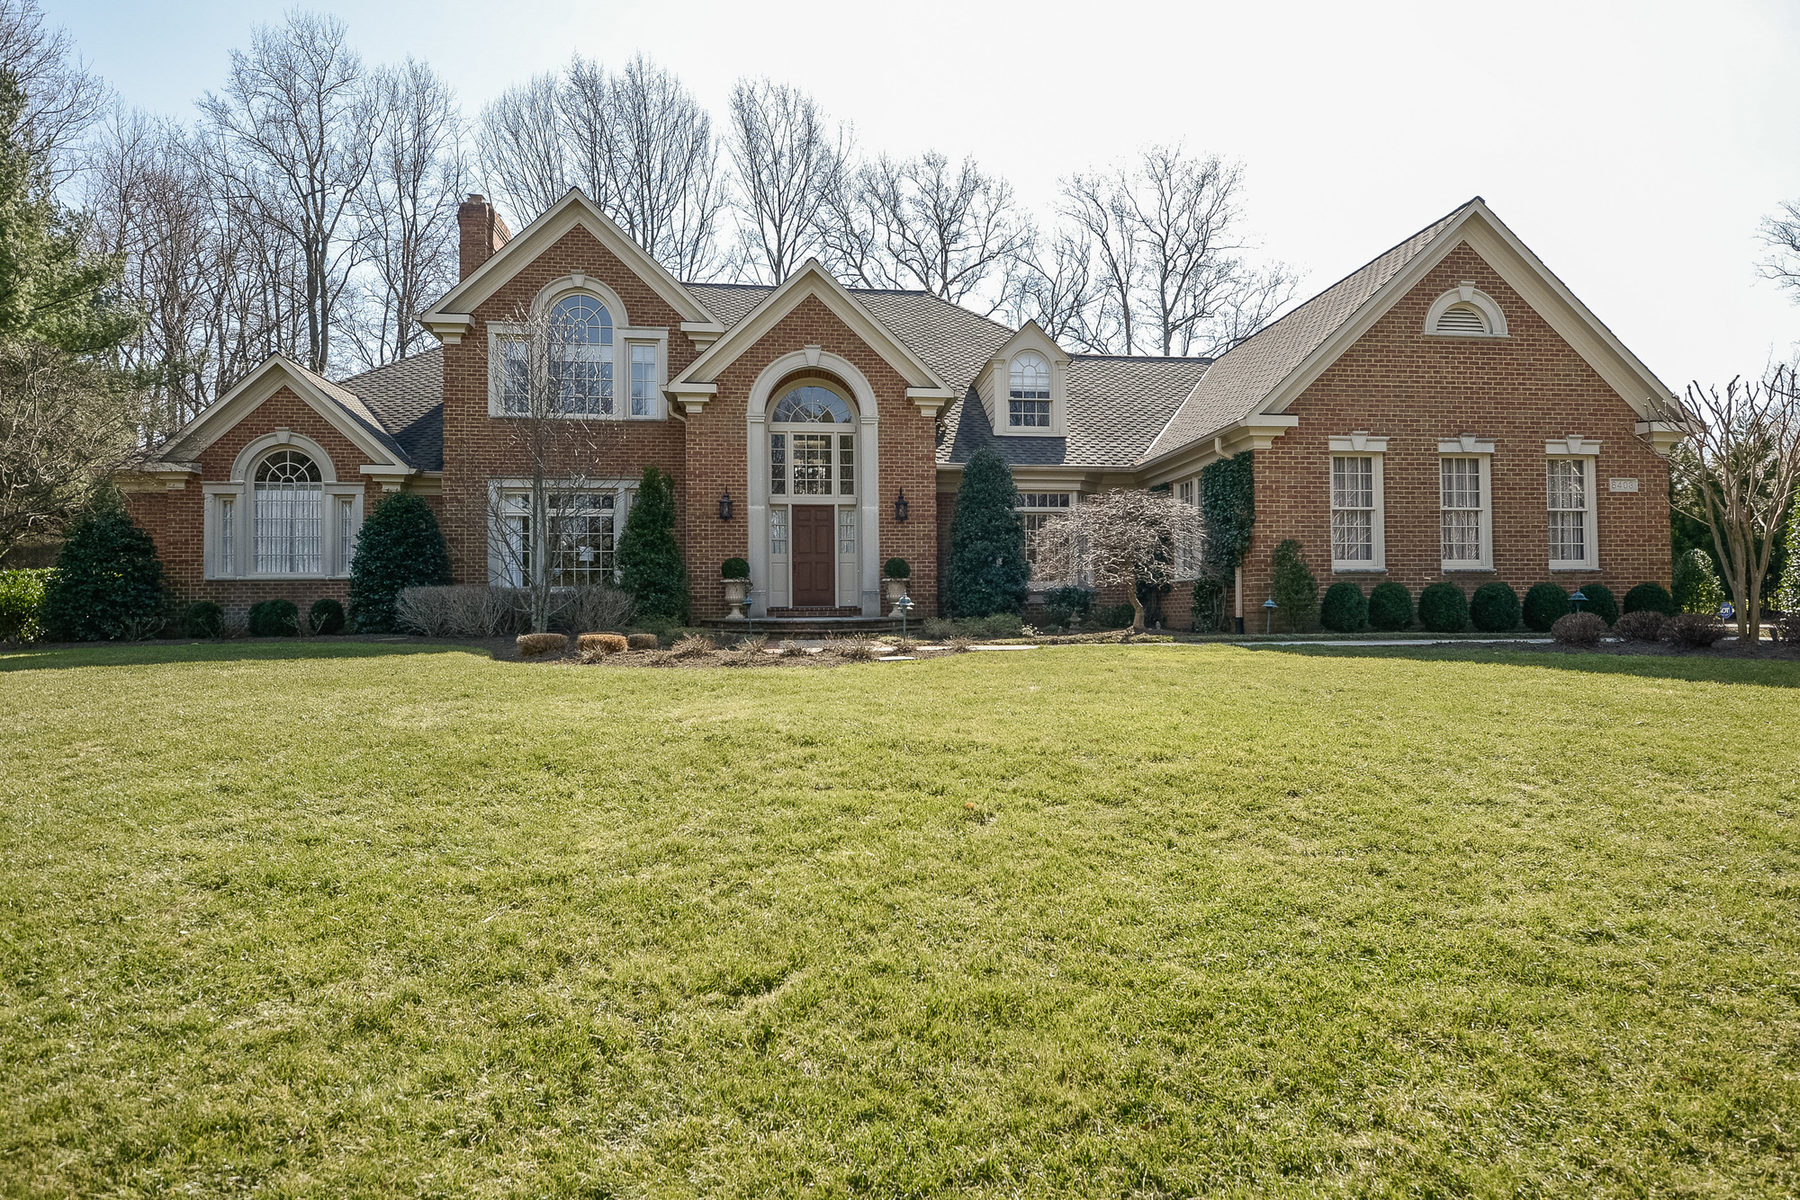 Additional photo for property listing at 8403 Brookewood Court, Mclean 8403 Brookewood Ct 麦克林, 弗吉尼亚州 22102 美国